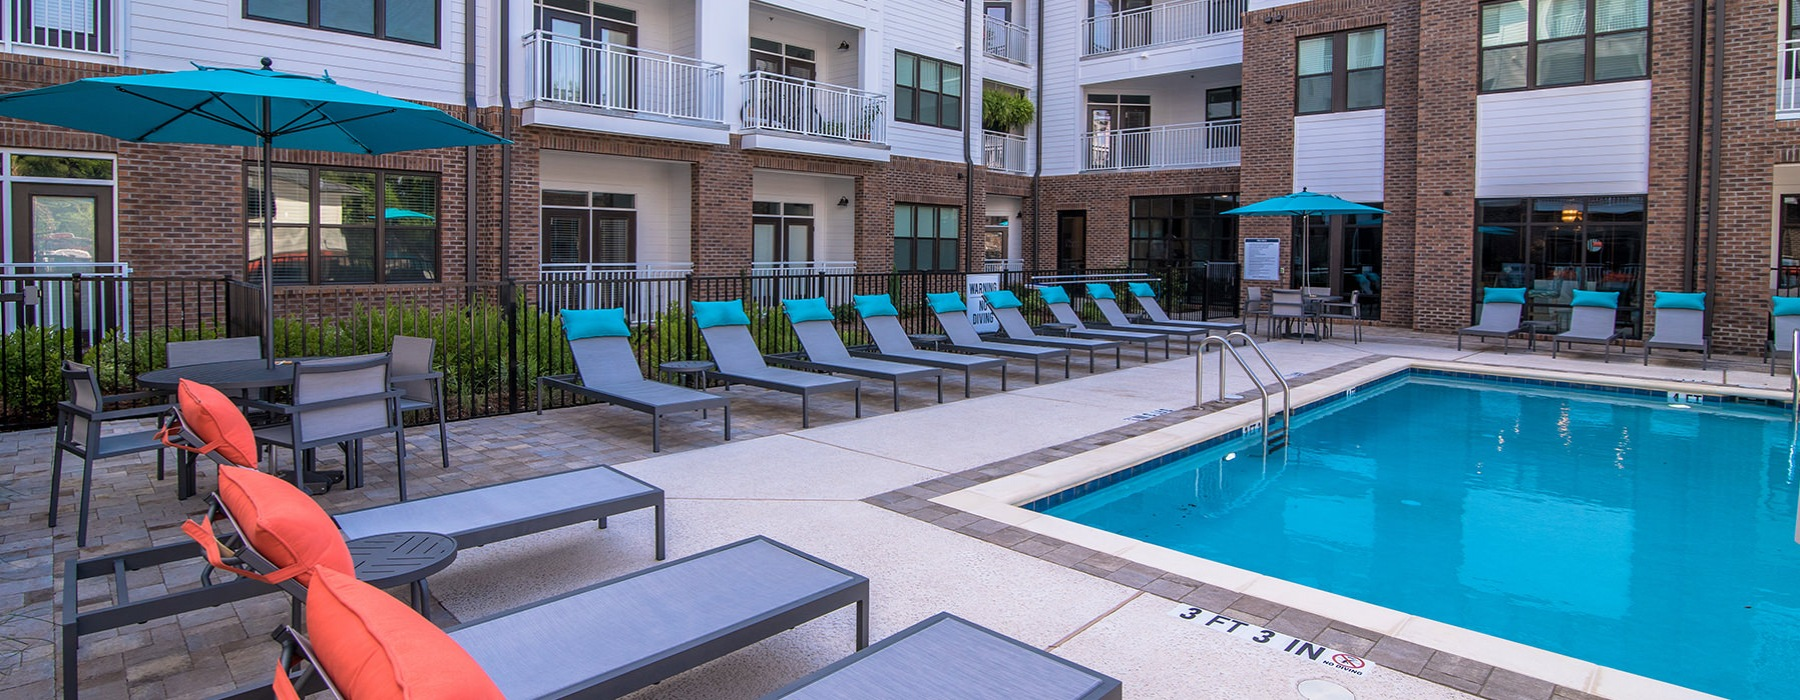 Pool enclosed by apartment units with lots of outdoor seating